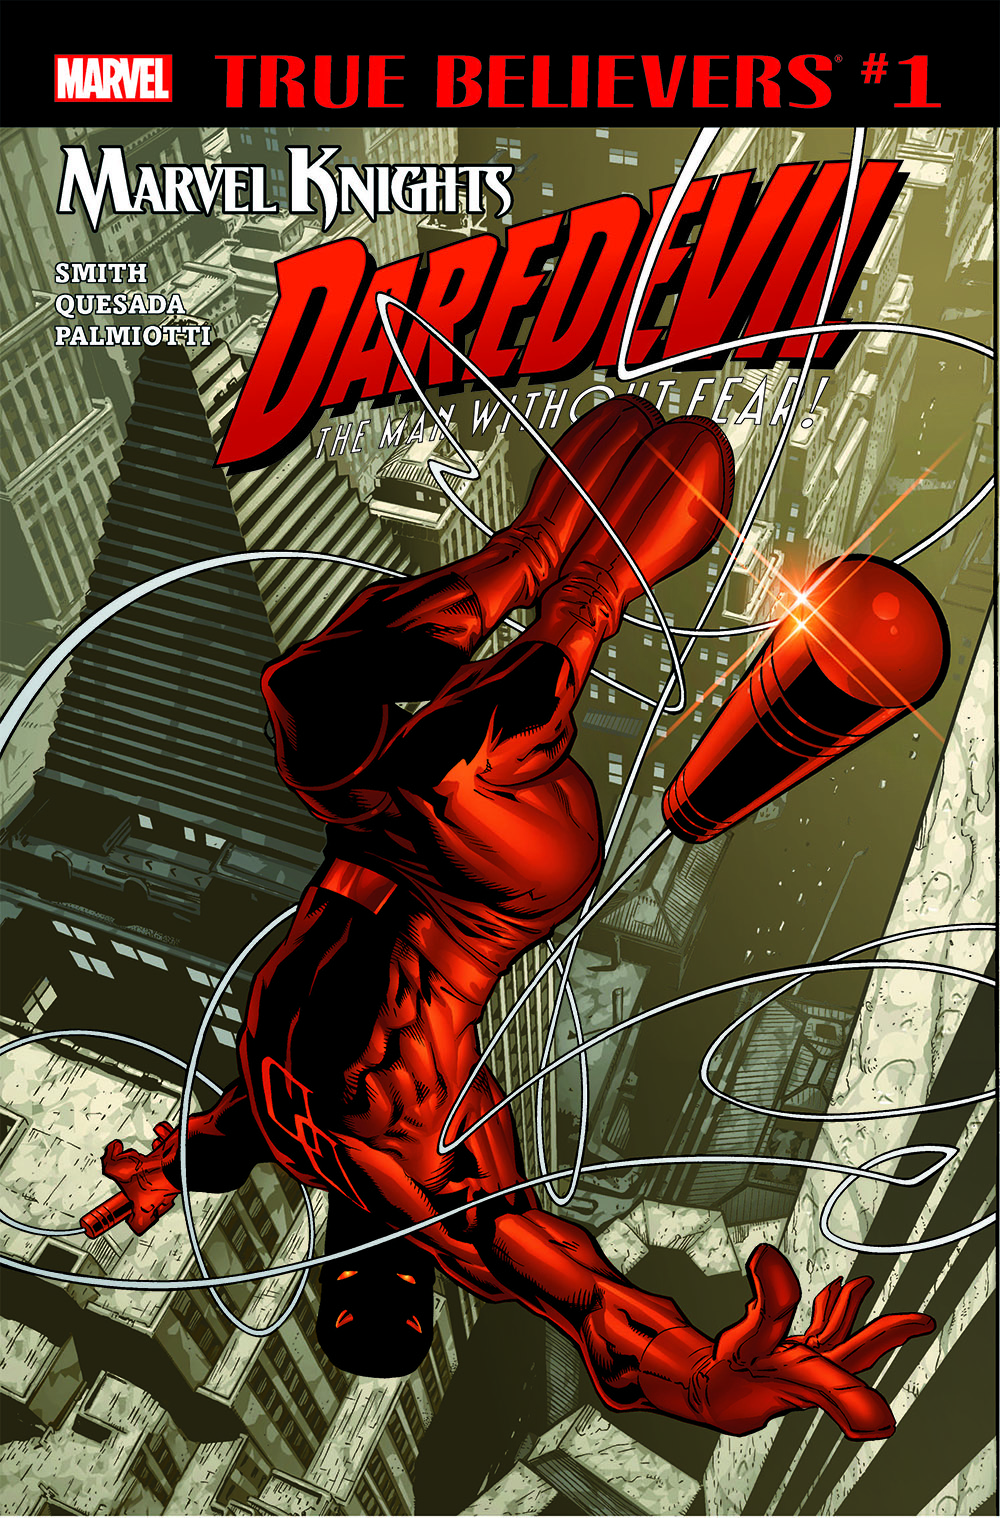 True Believers: Marvel Knights 20th Anniversary - Daredevil by Smith, Quesada & Palmiotti (2018) #1